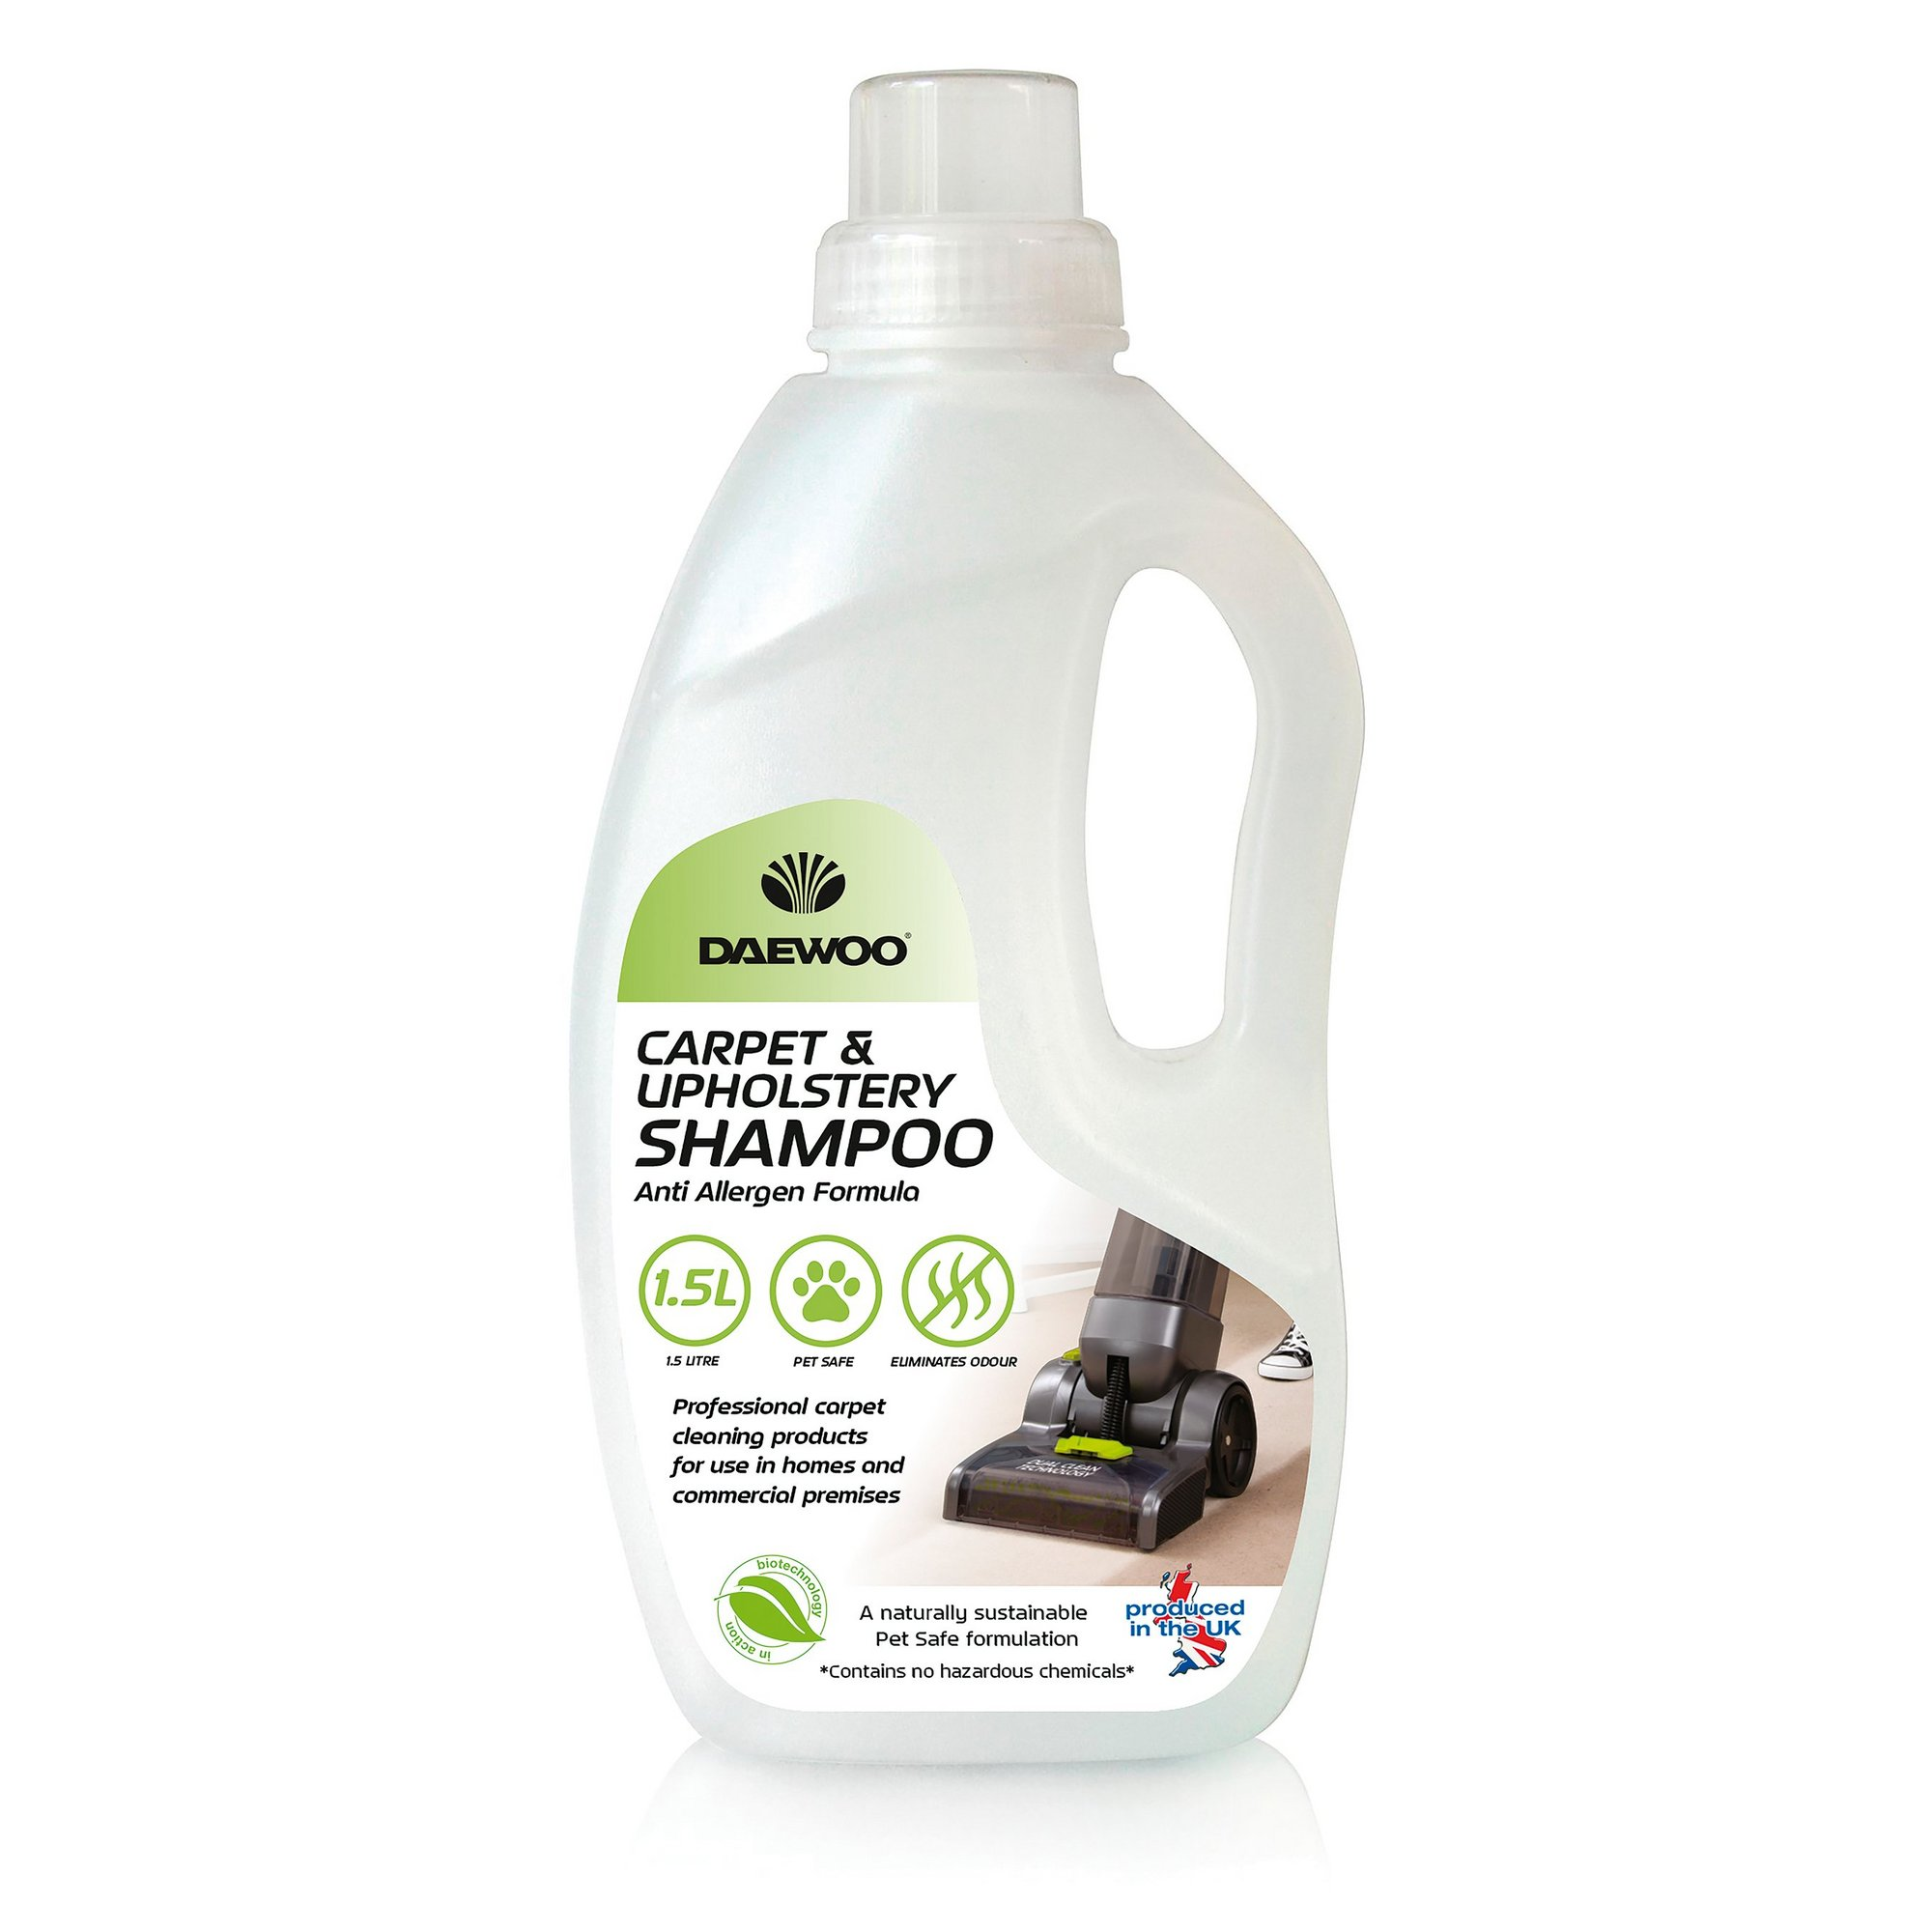 Image of Daewoo 1.5L Carpet Cleaning Solution